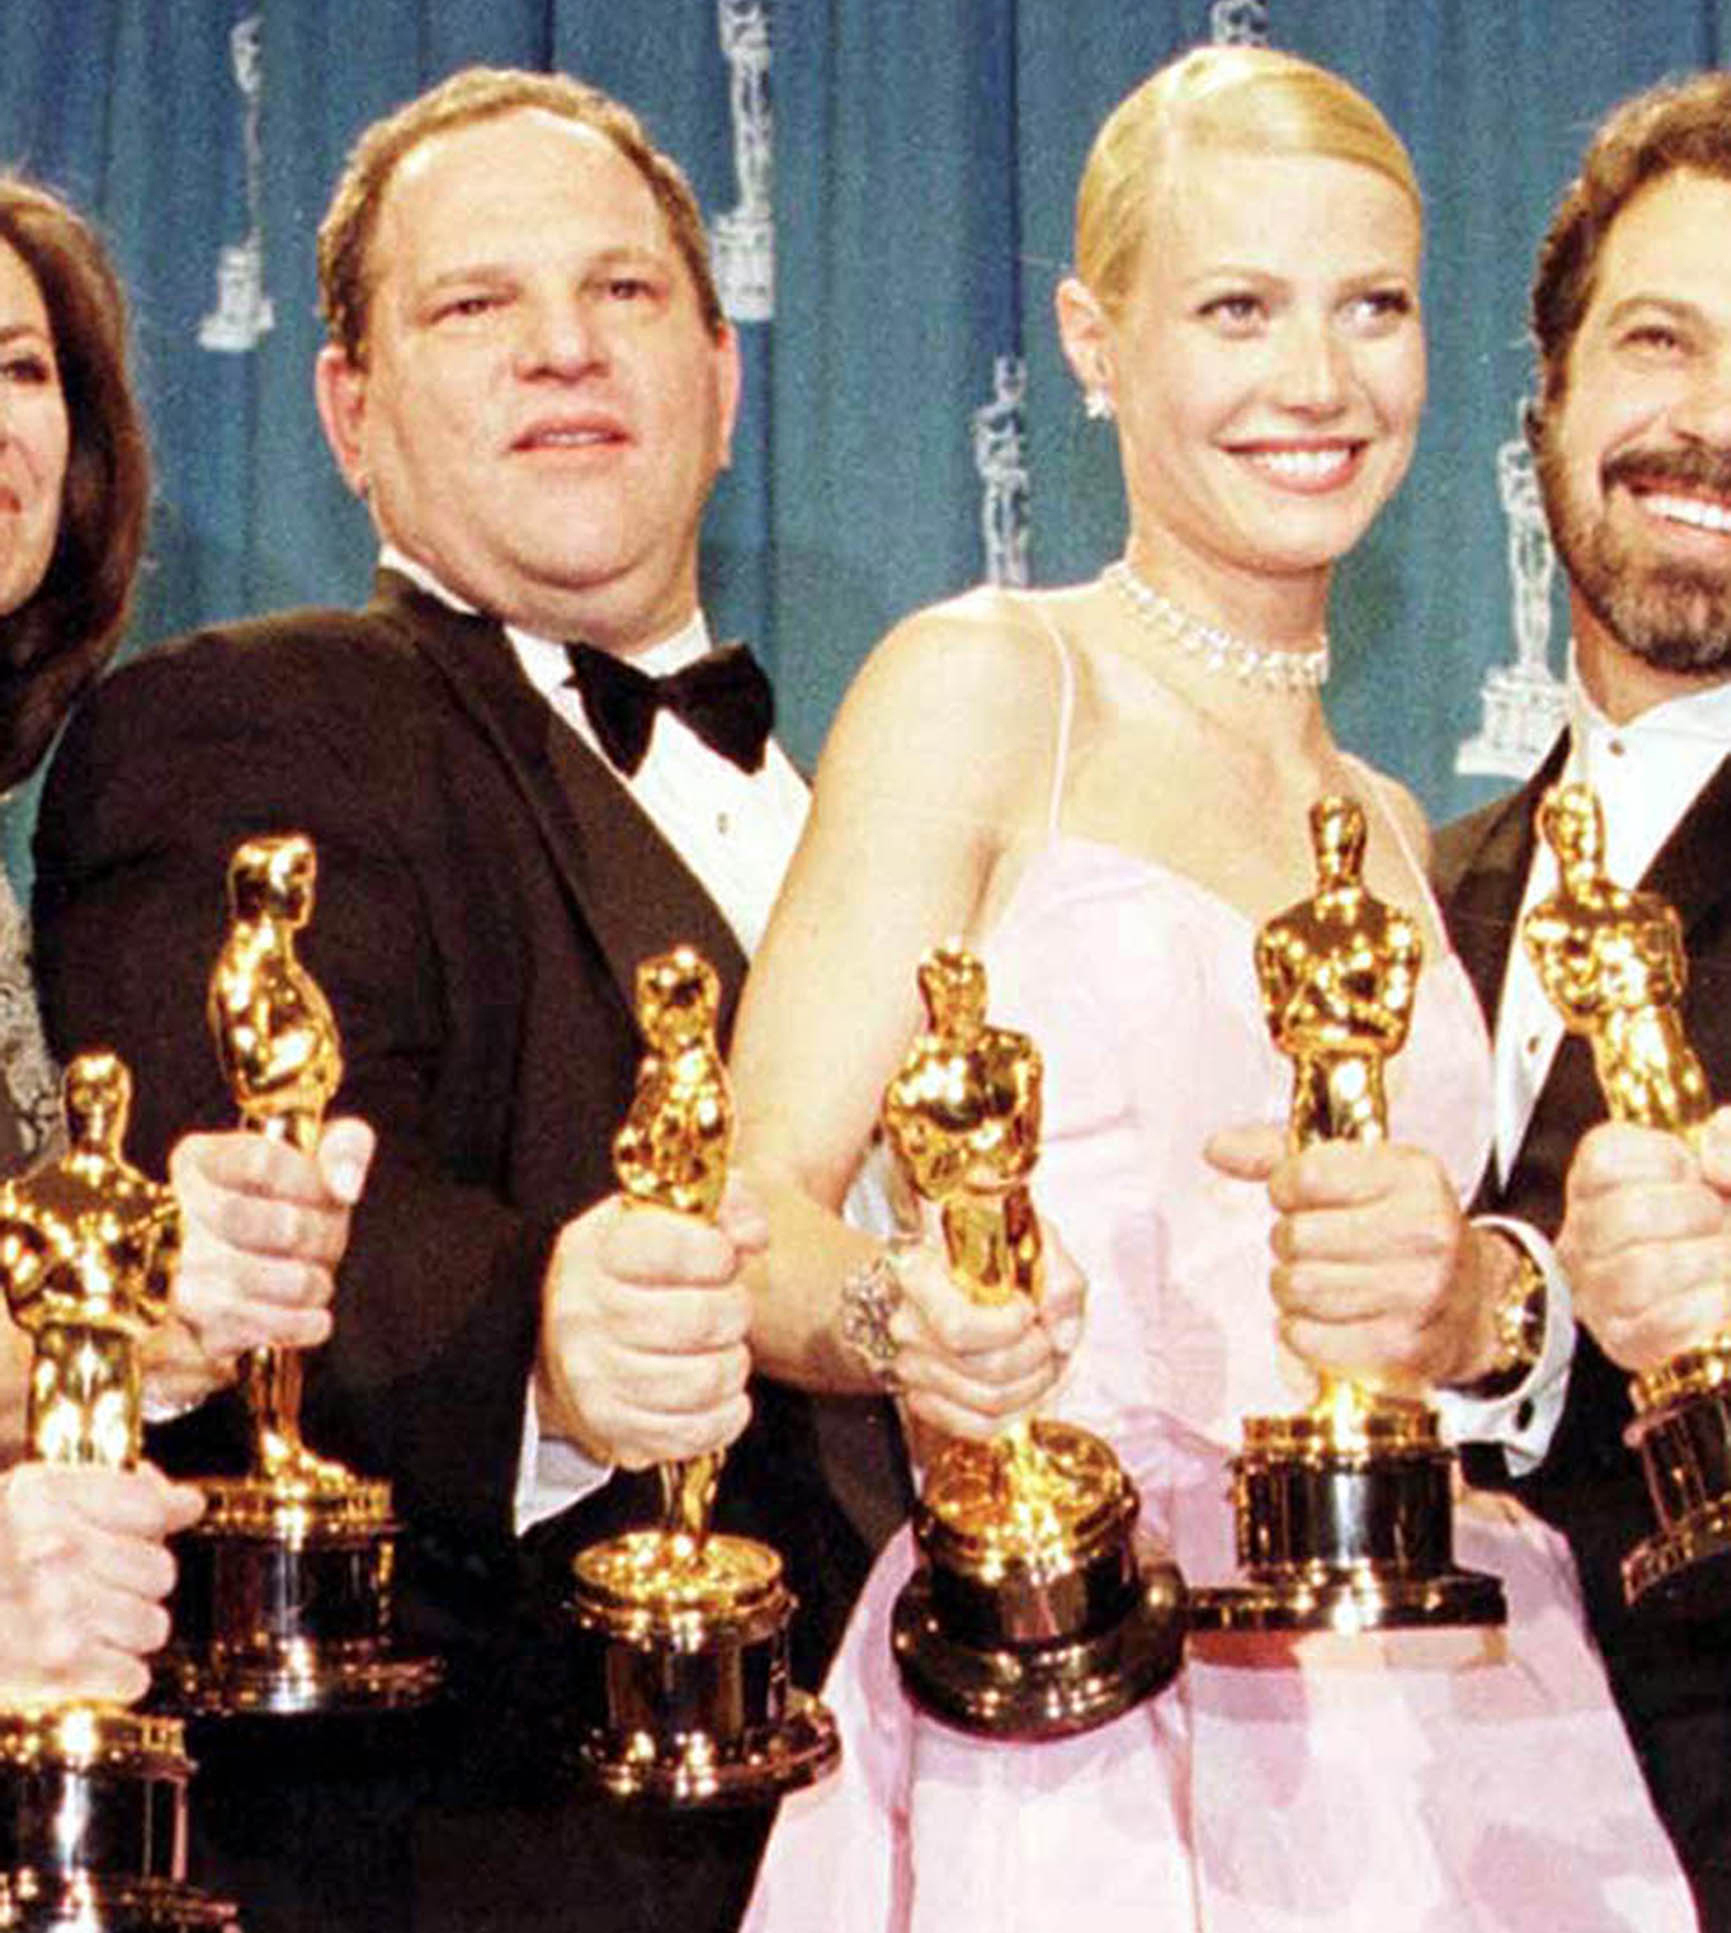 Harvey Weinstein and Gwyneth Paltrow with Oscars for the film Shakespeare In Love.